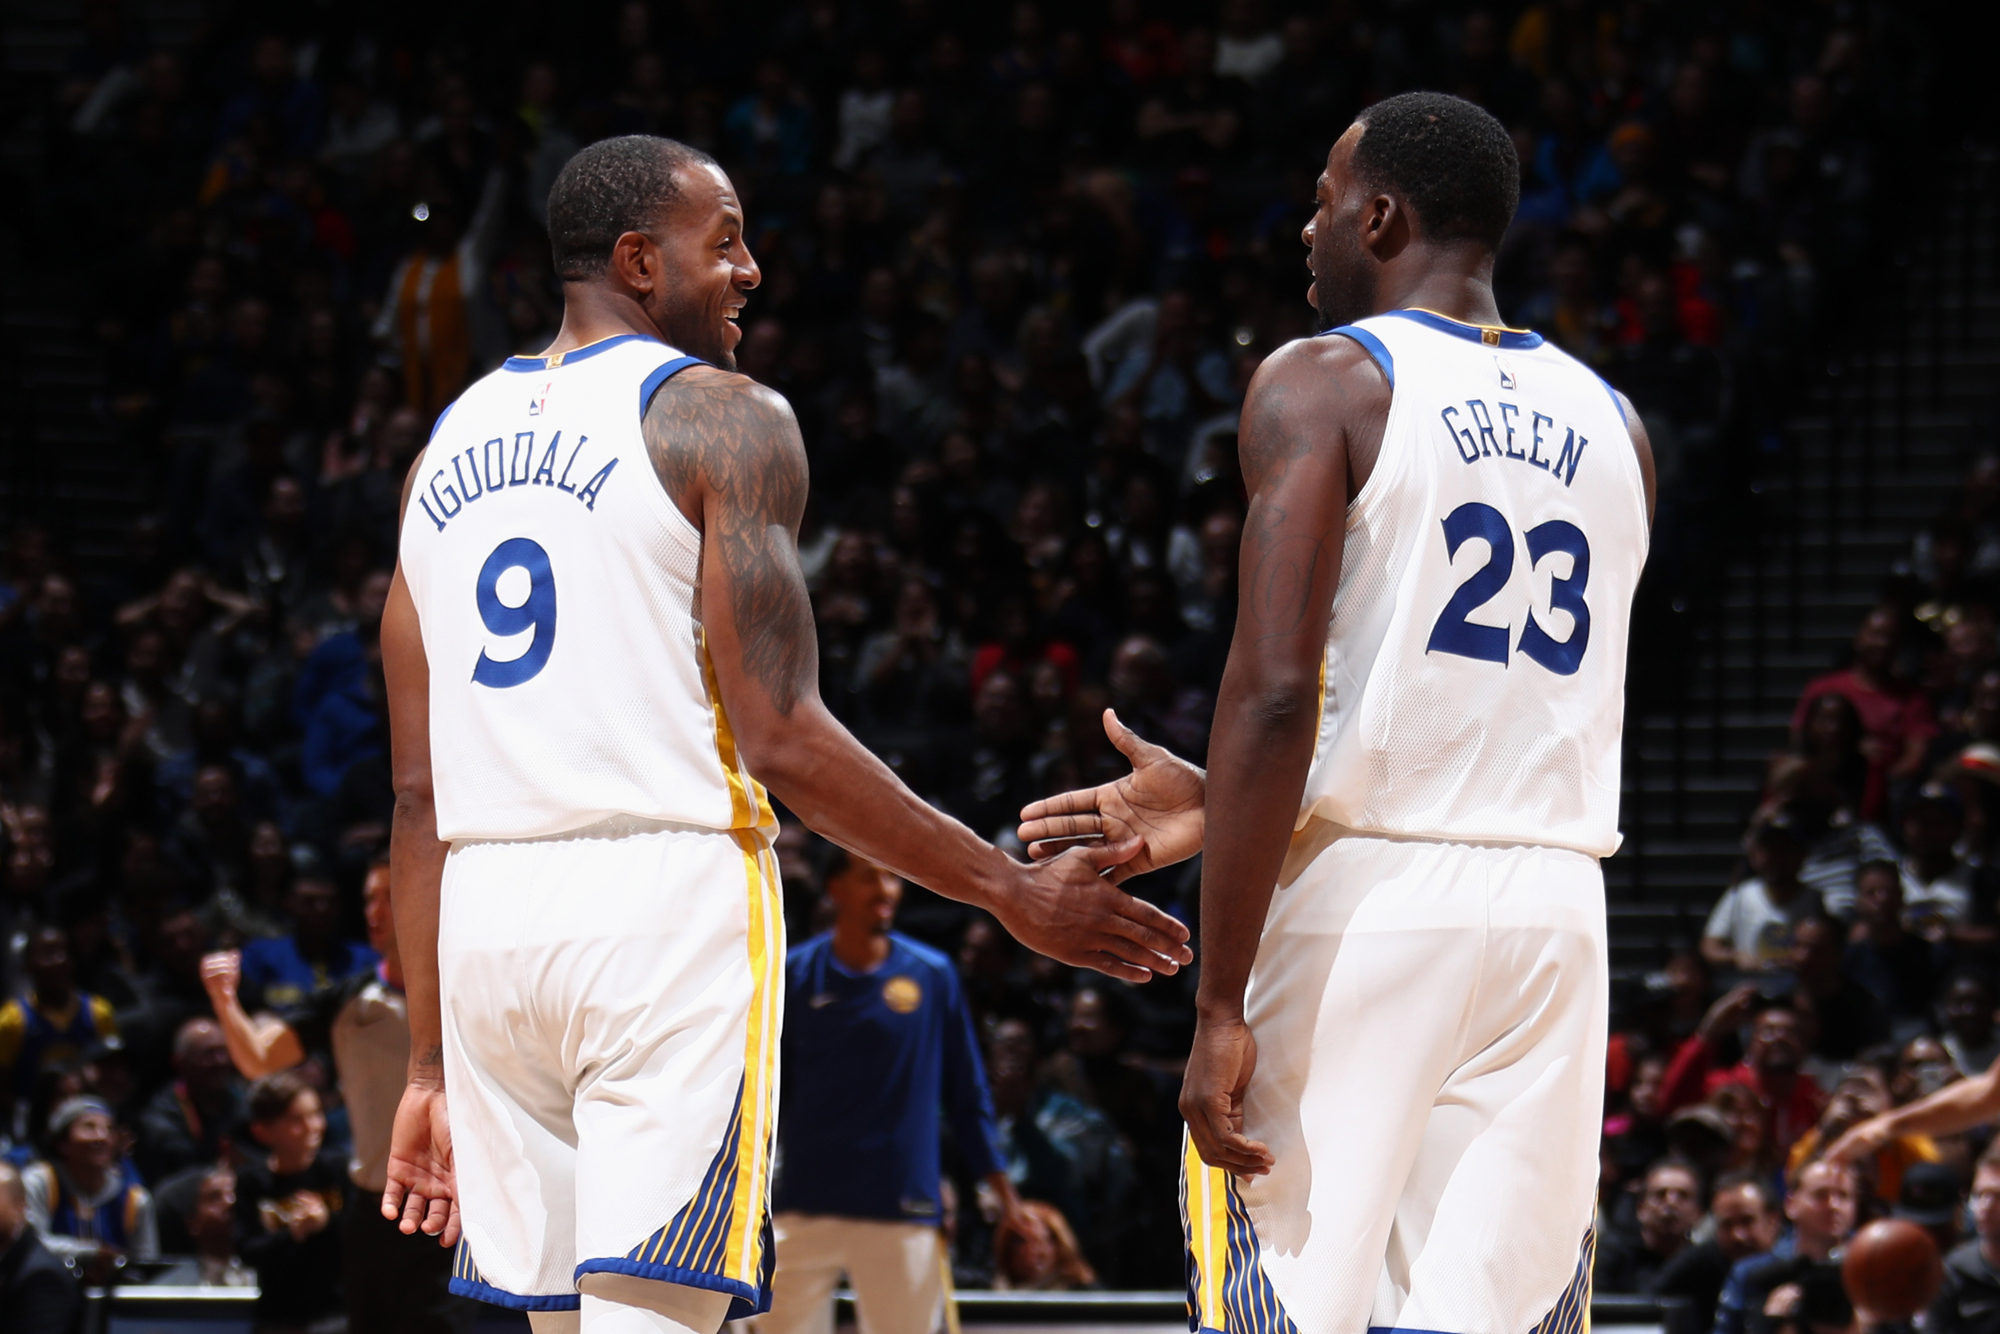 ad8dc220a Draymond Green and Andre Iguodala high five during game.